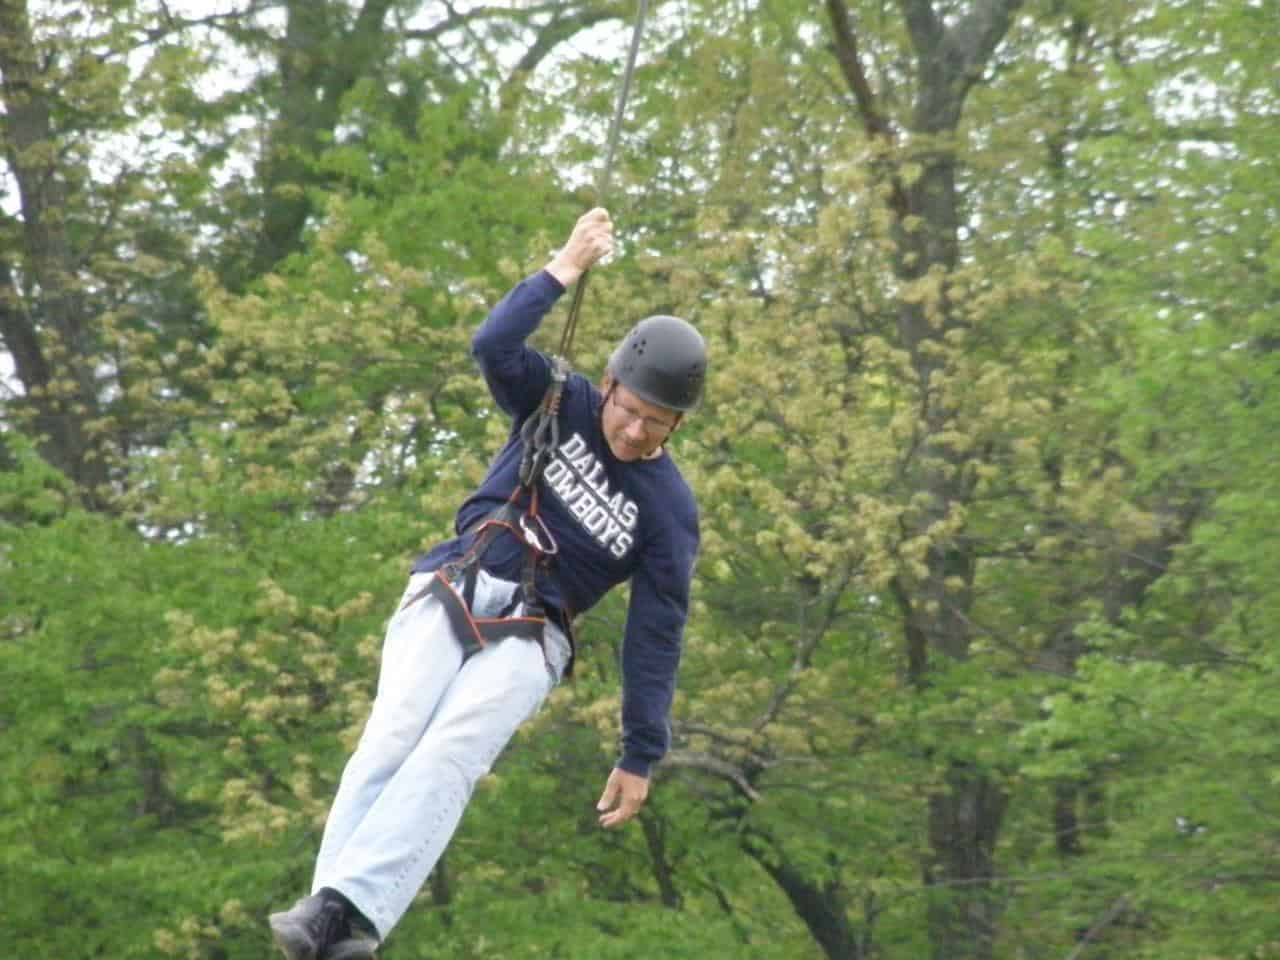 Man on a zipline